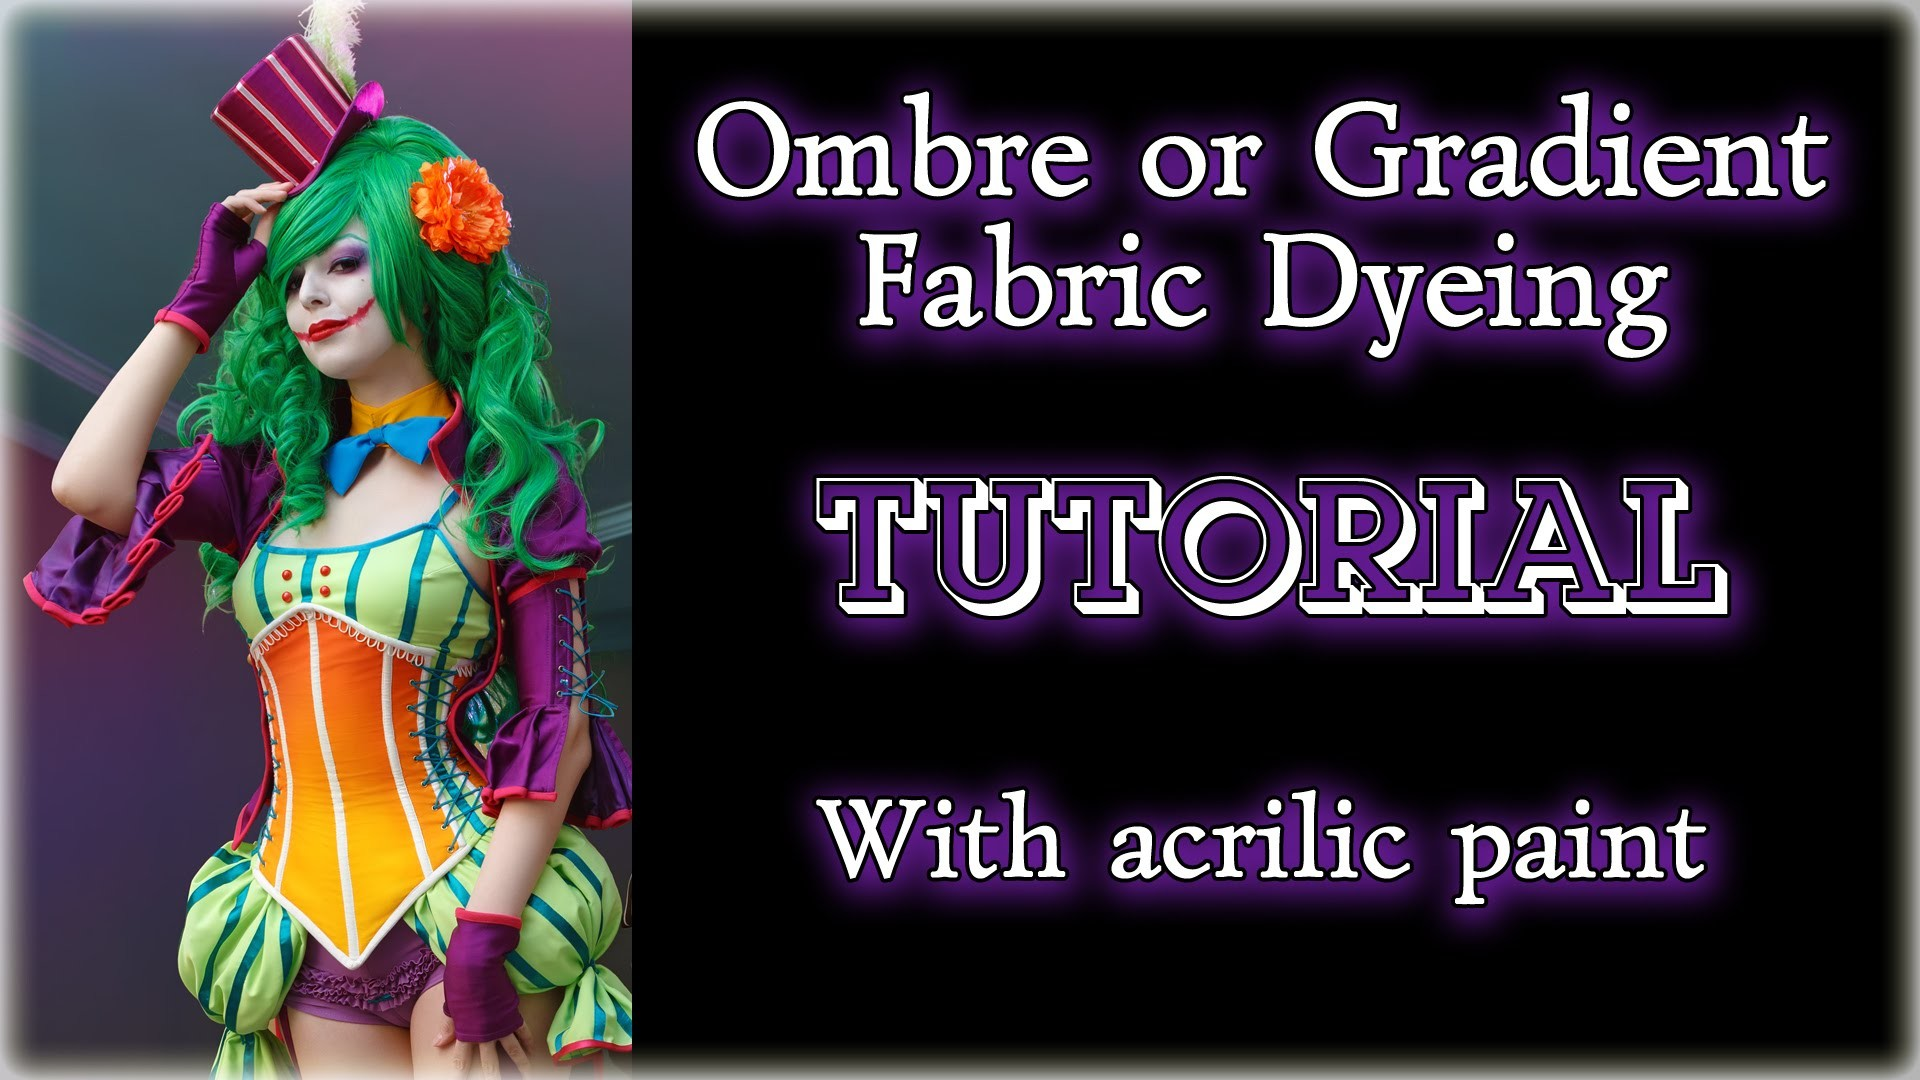 Ombre or Gradient Fabric Dyeing TUTORIAL (with acrilic paint) [Eng sub]